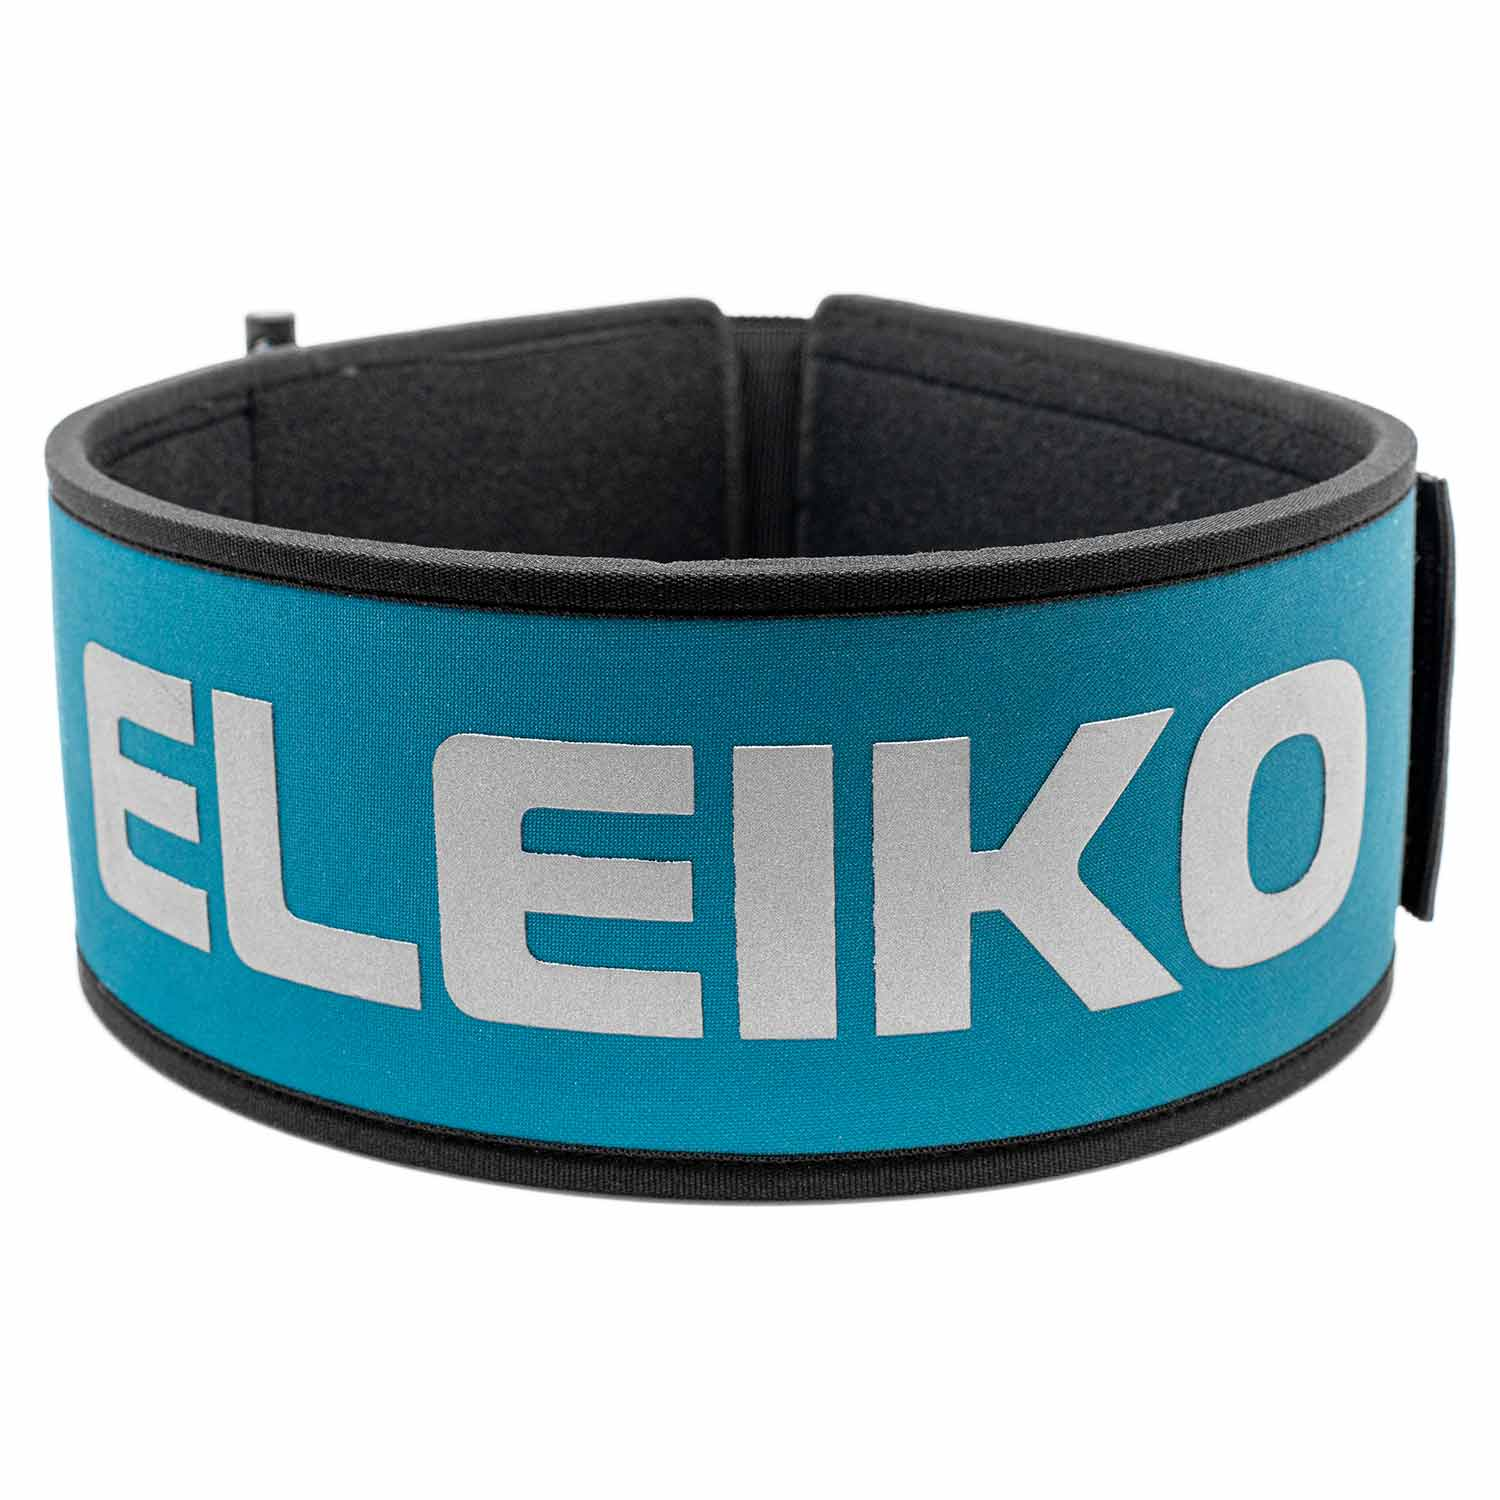 ELEIKOWeightlifting Belt